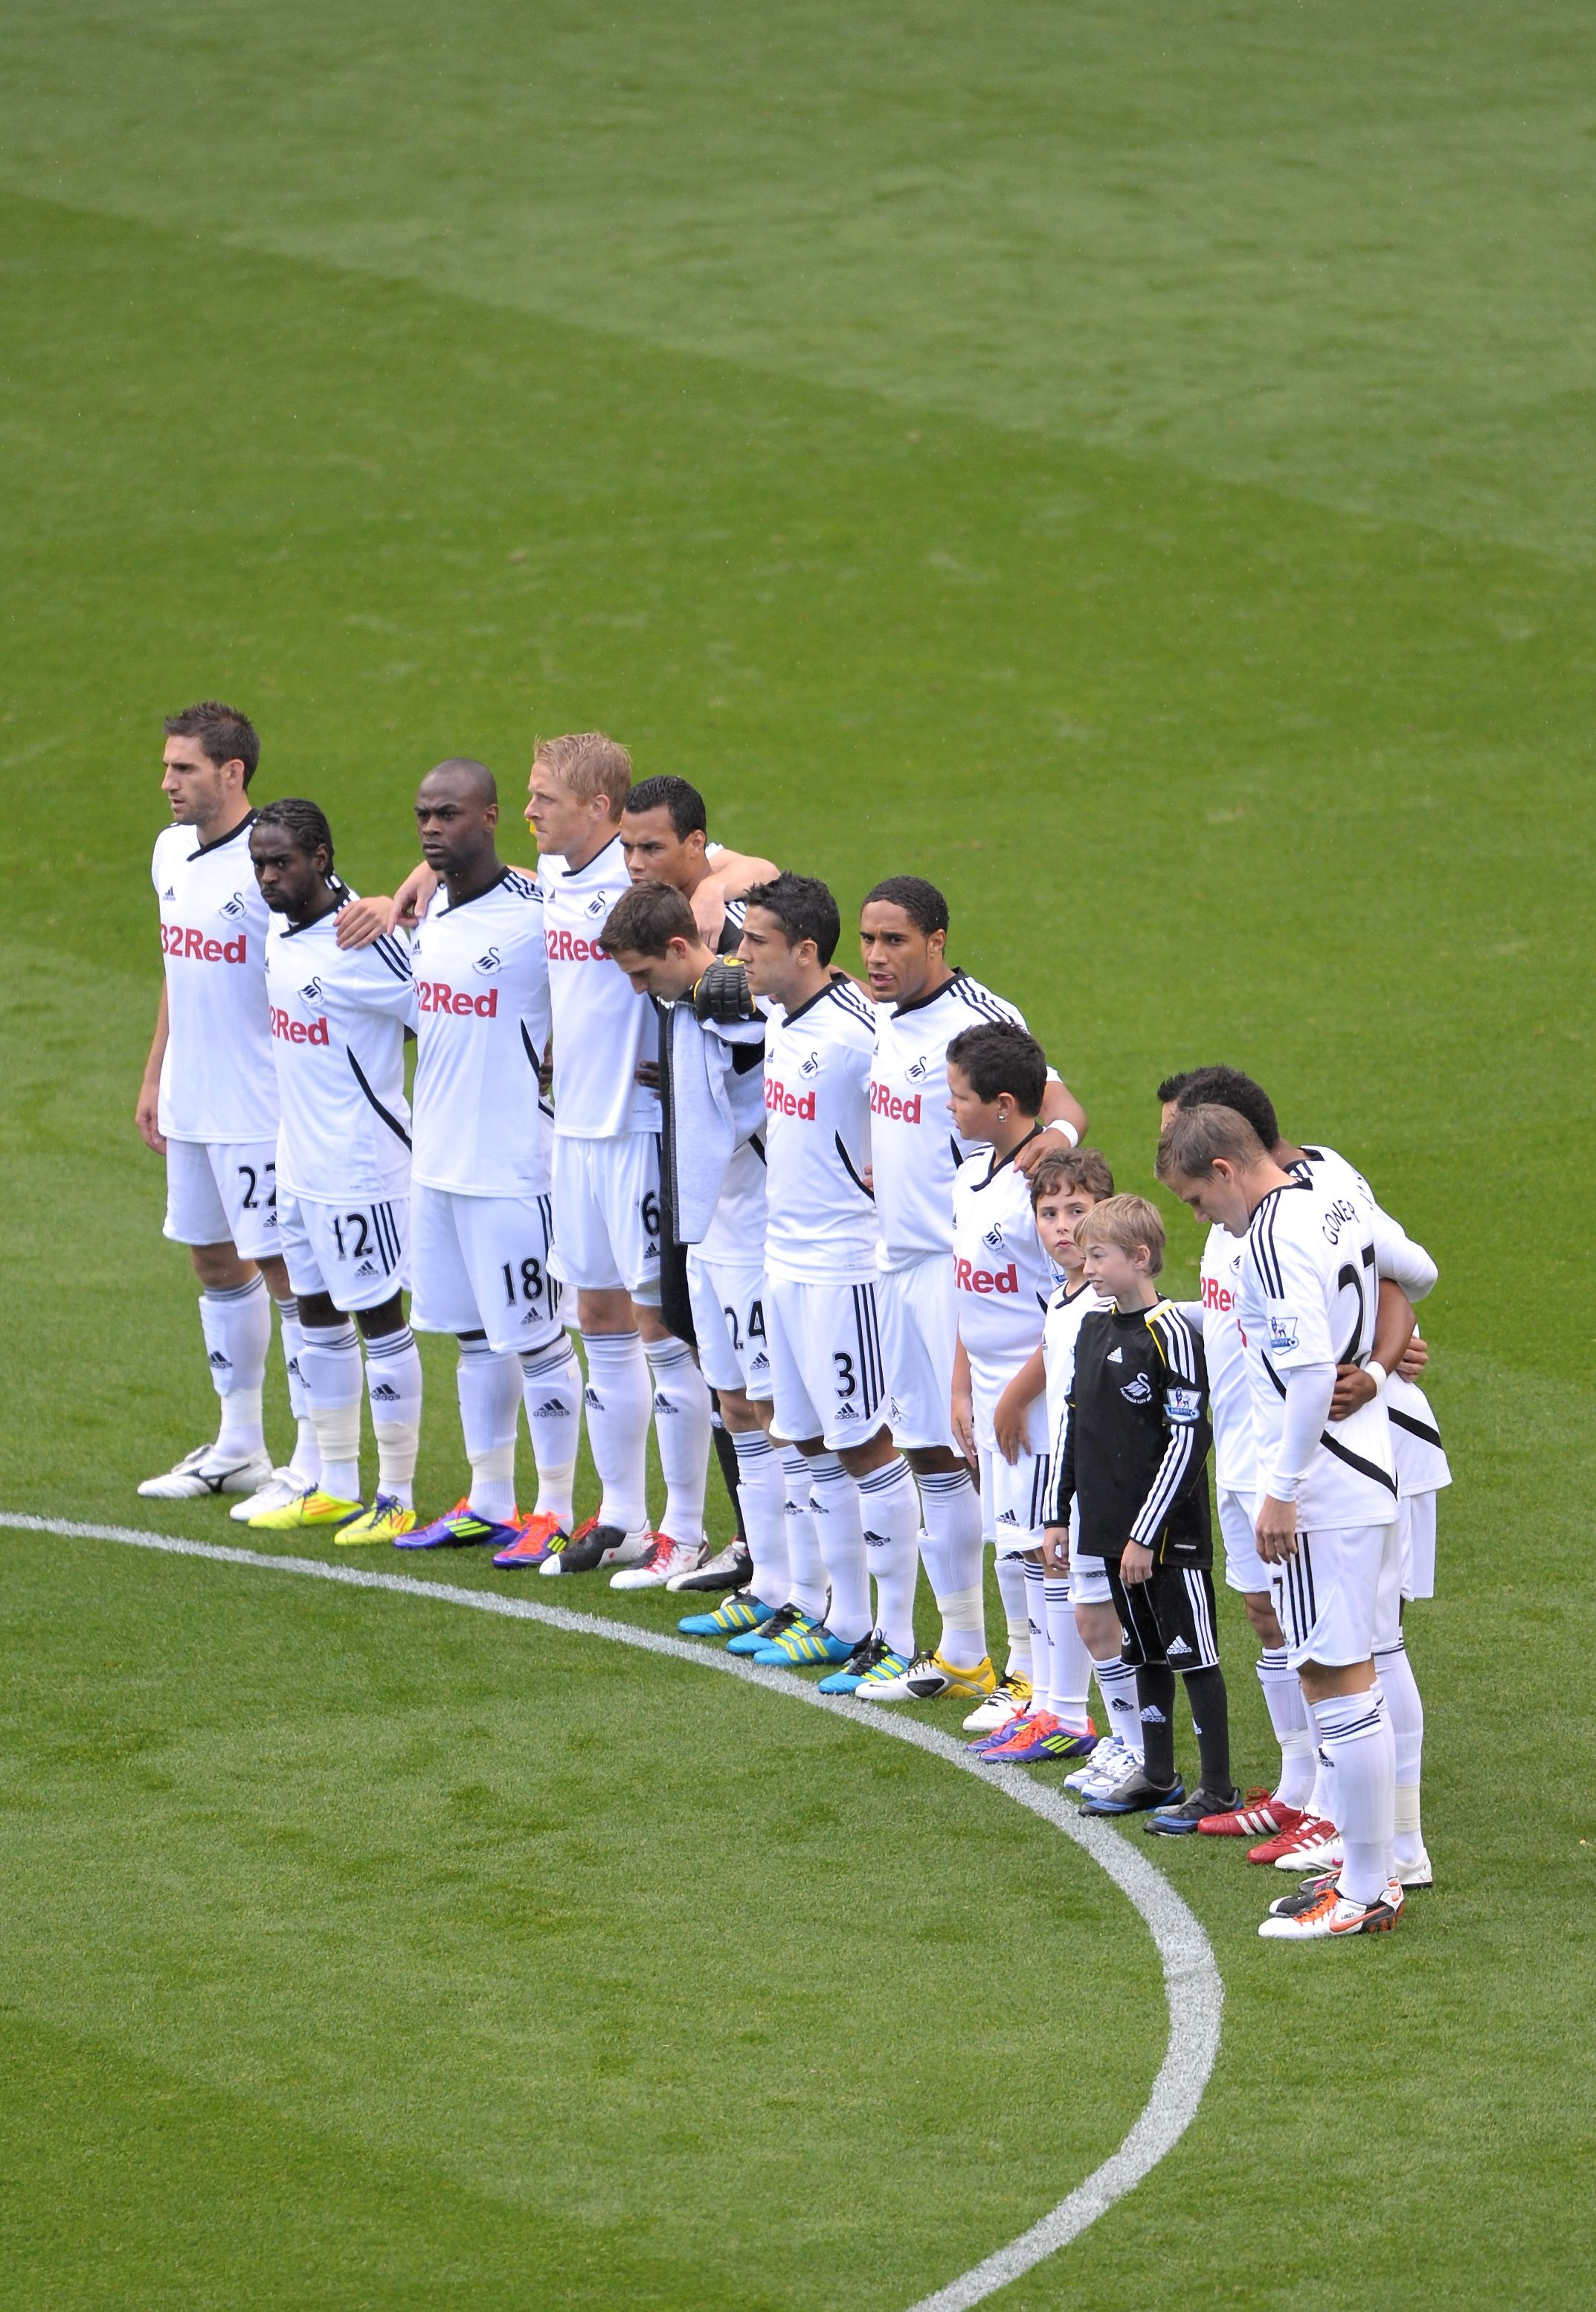 (12) The day after the bodies of the four miners are recovered, Swansea City players pay their respects with a minute's silence.